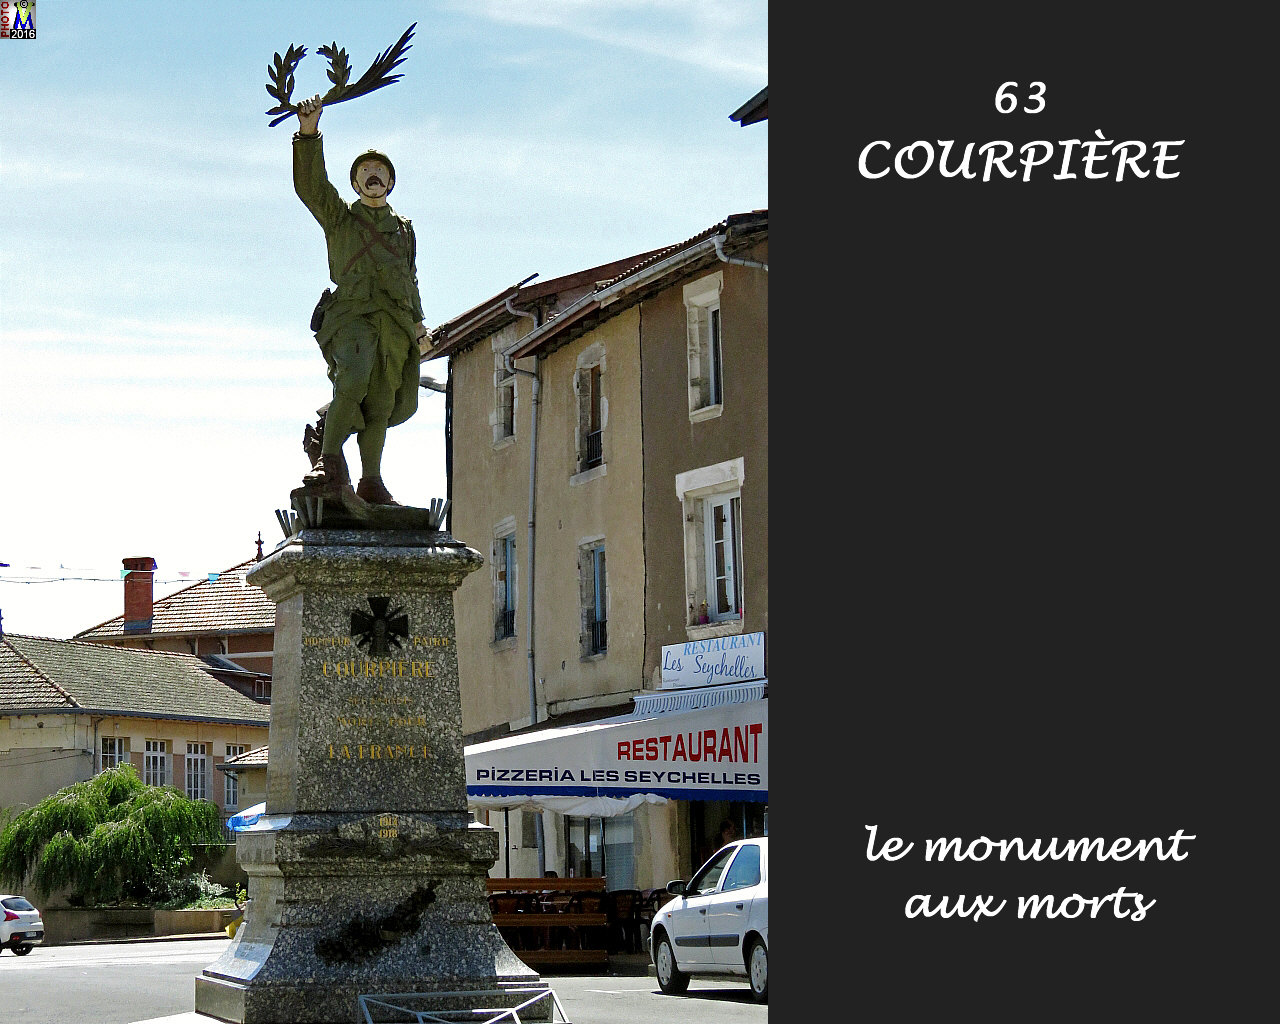 63COURPIERE_morts_100.jpg